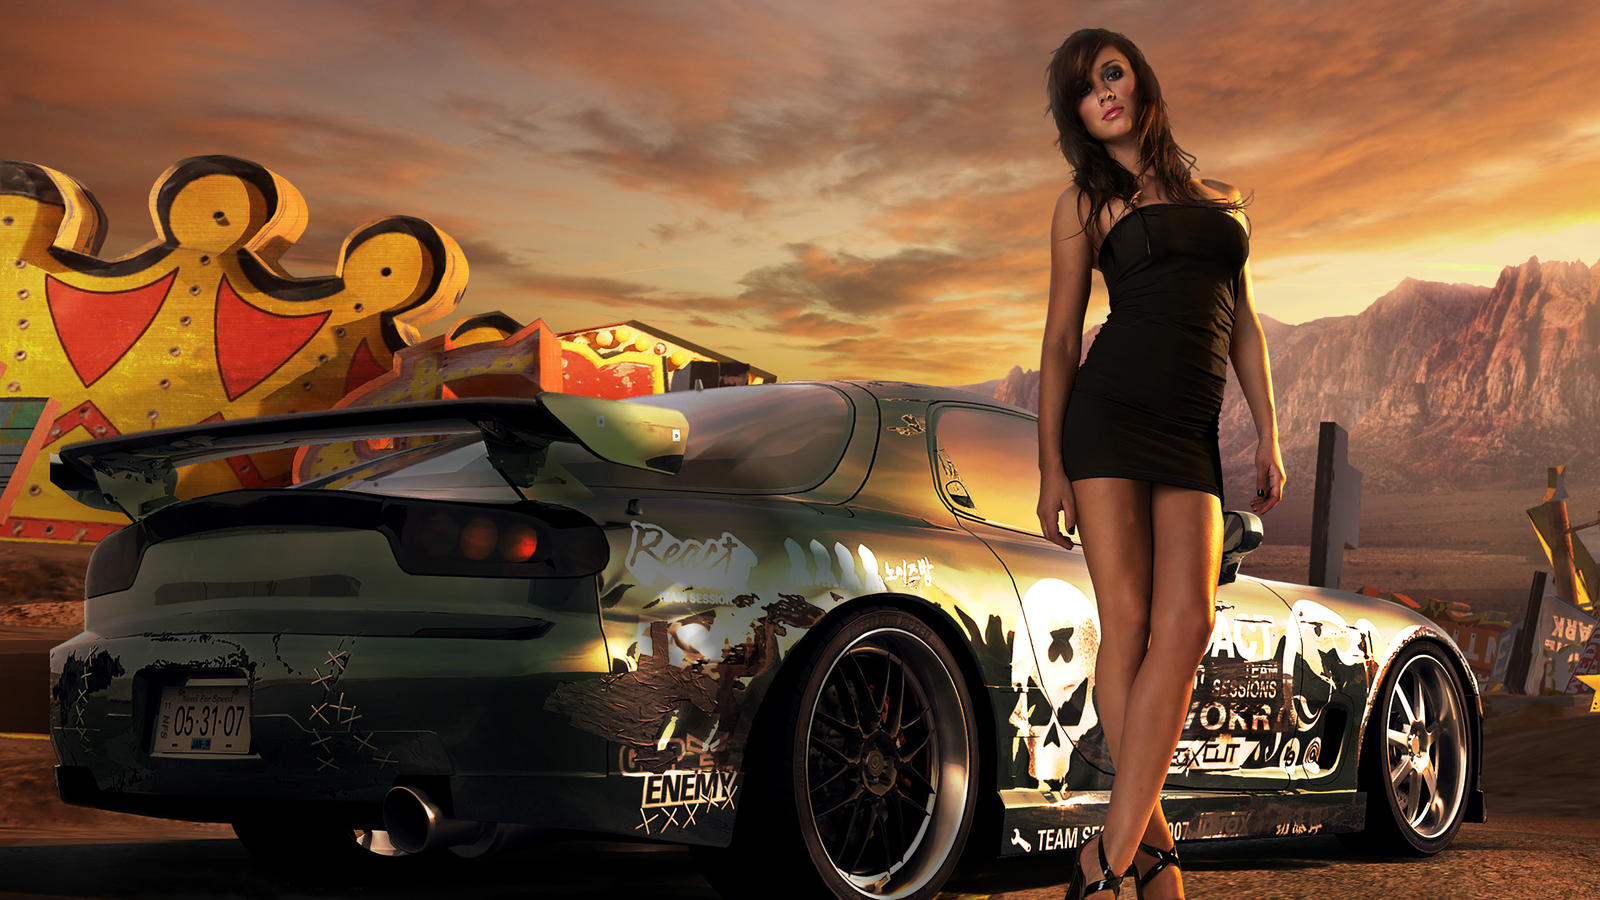 Nfs Prostreet Continue - Totaled! (ProStreet inspired livery